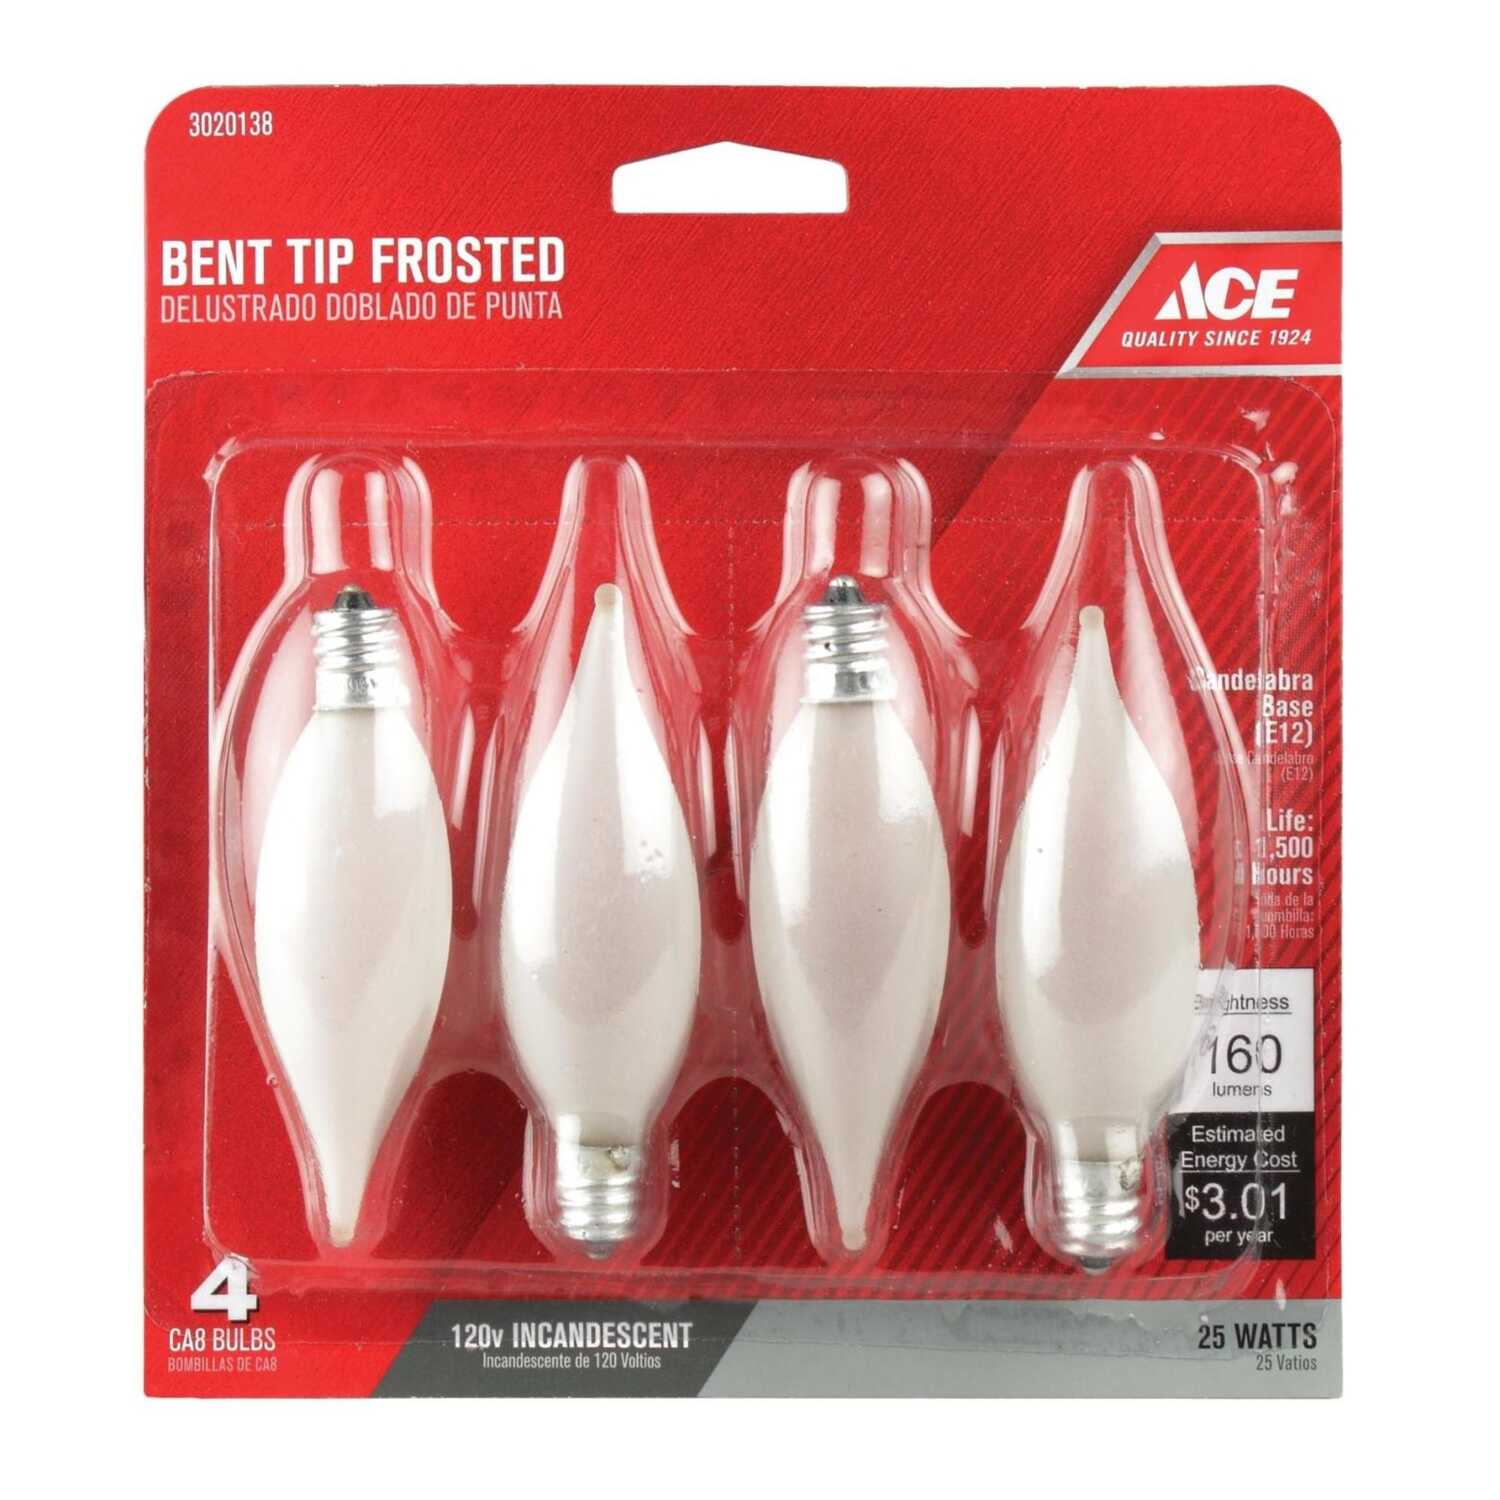 Ace  25 watts CA8  Bent Tip  Incandescent Light Bulb  235 lumens White (Frosted)  4 pk